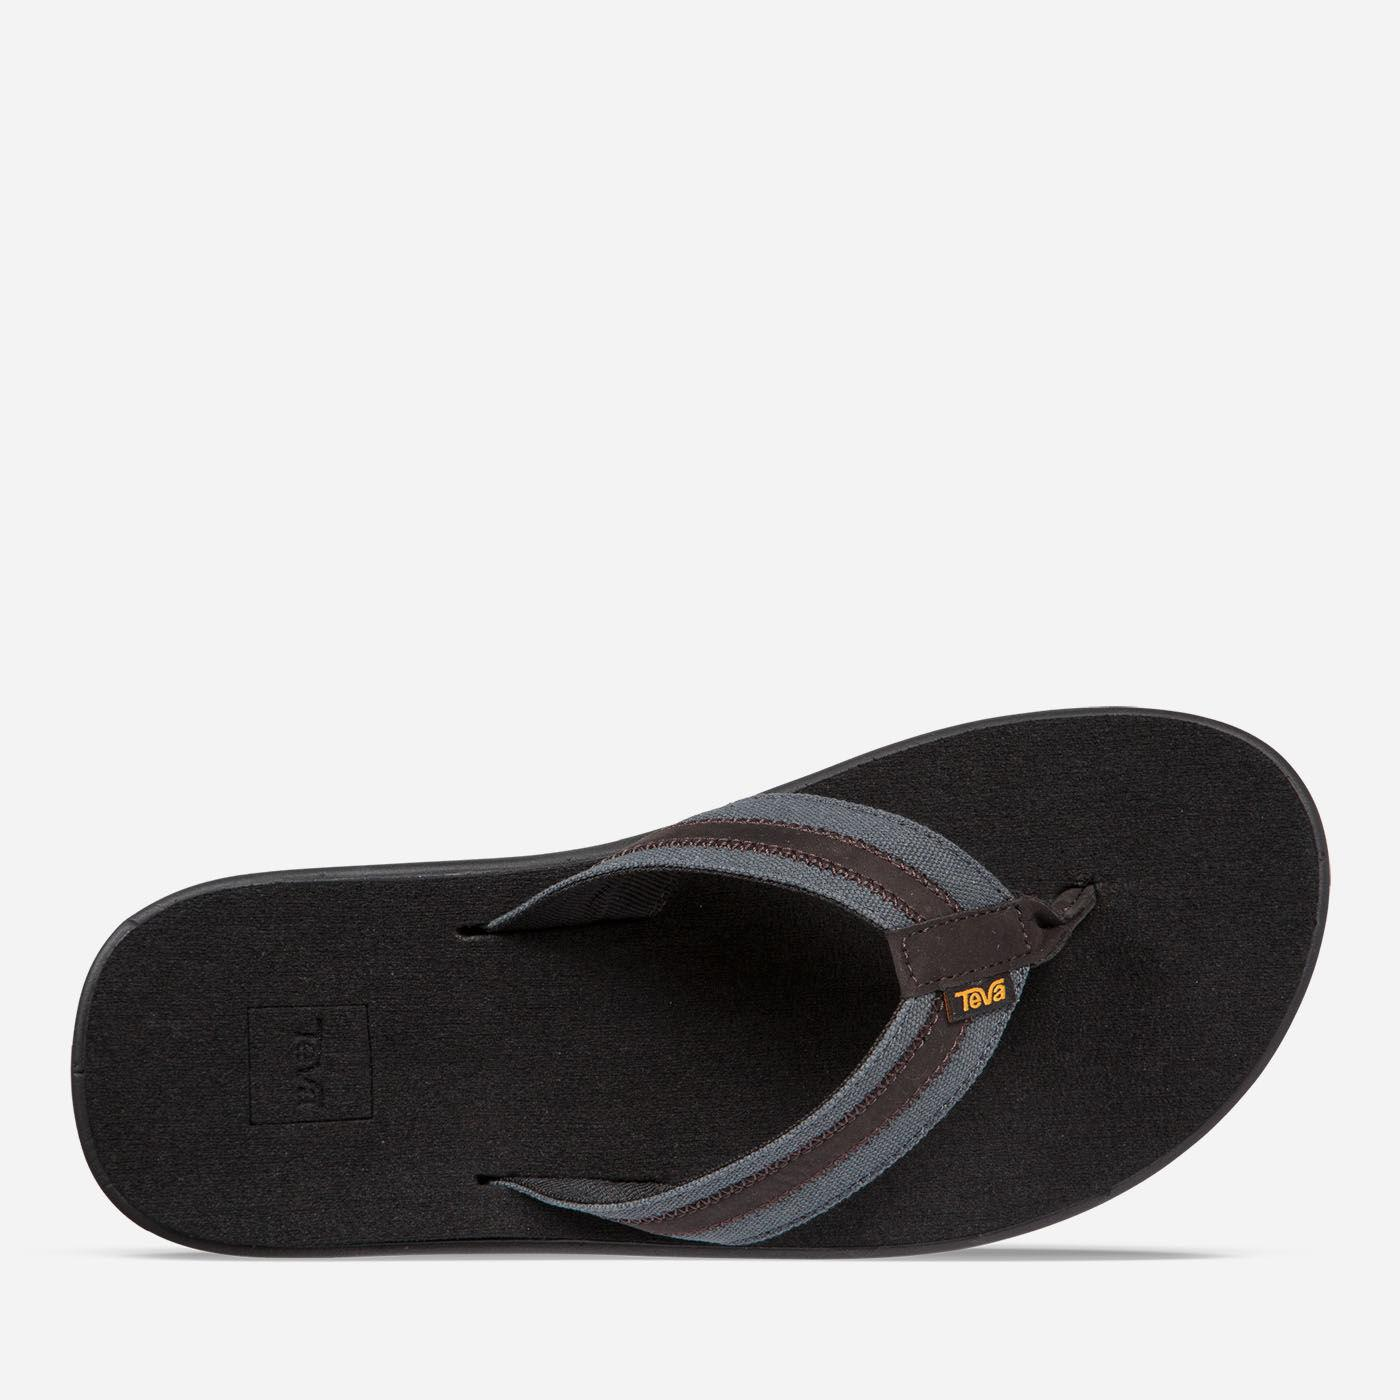 617530cad ... Voya Canvas Flip for Men - Lyst. View fullscreen